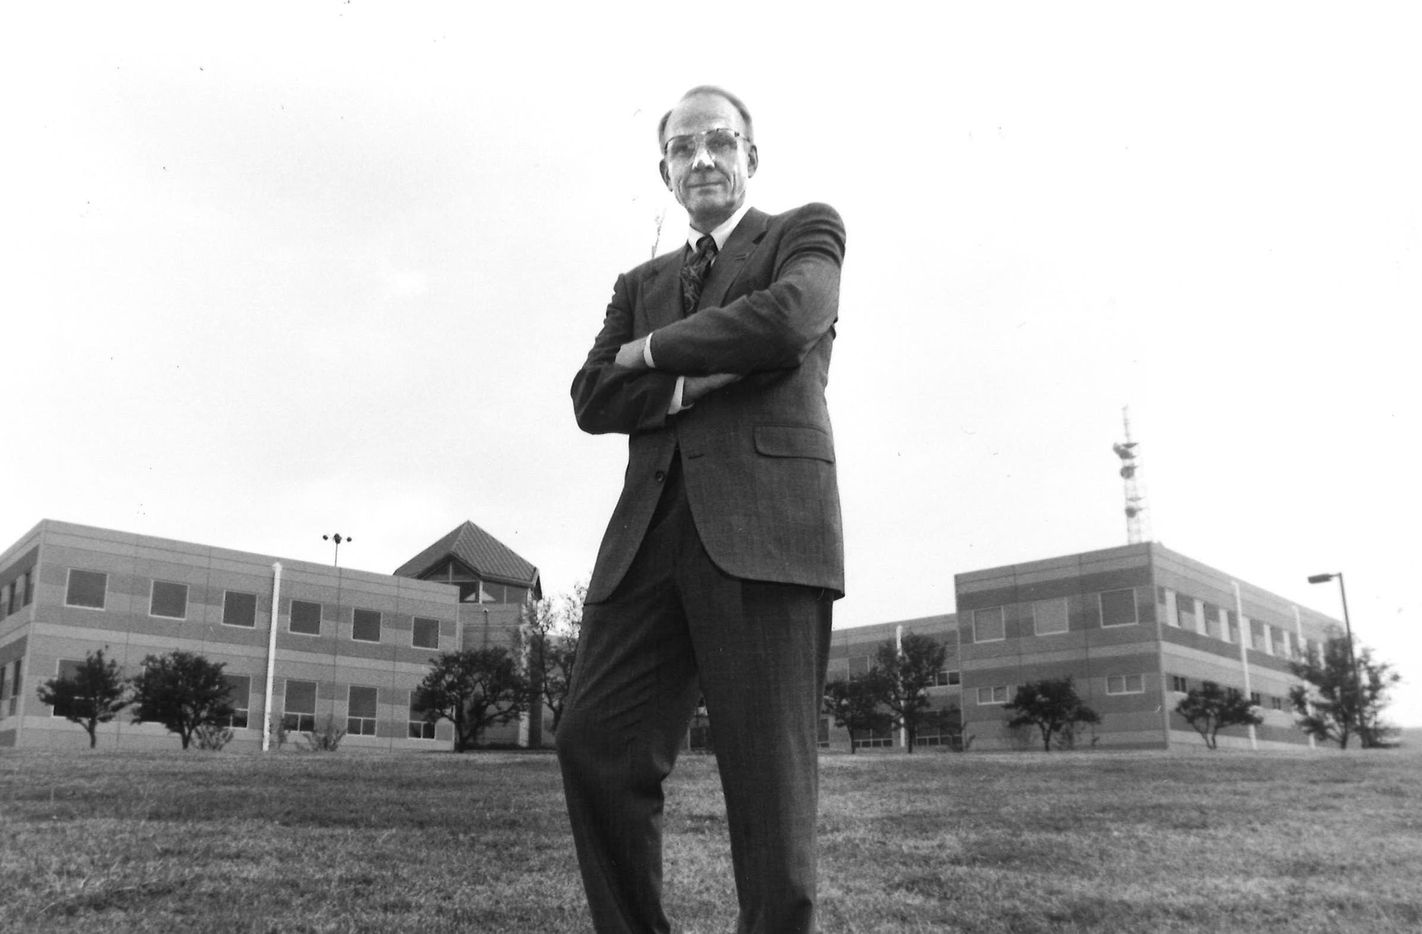 Dr. Robert H. Rutford, a former longtime president of the University of Texas at Dallas, outside of a new administration building that opened in October 1989.